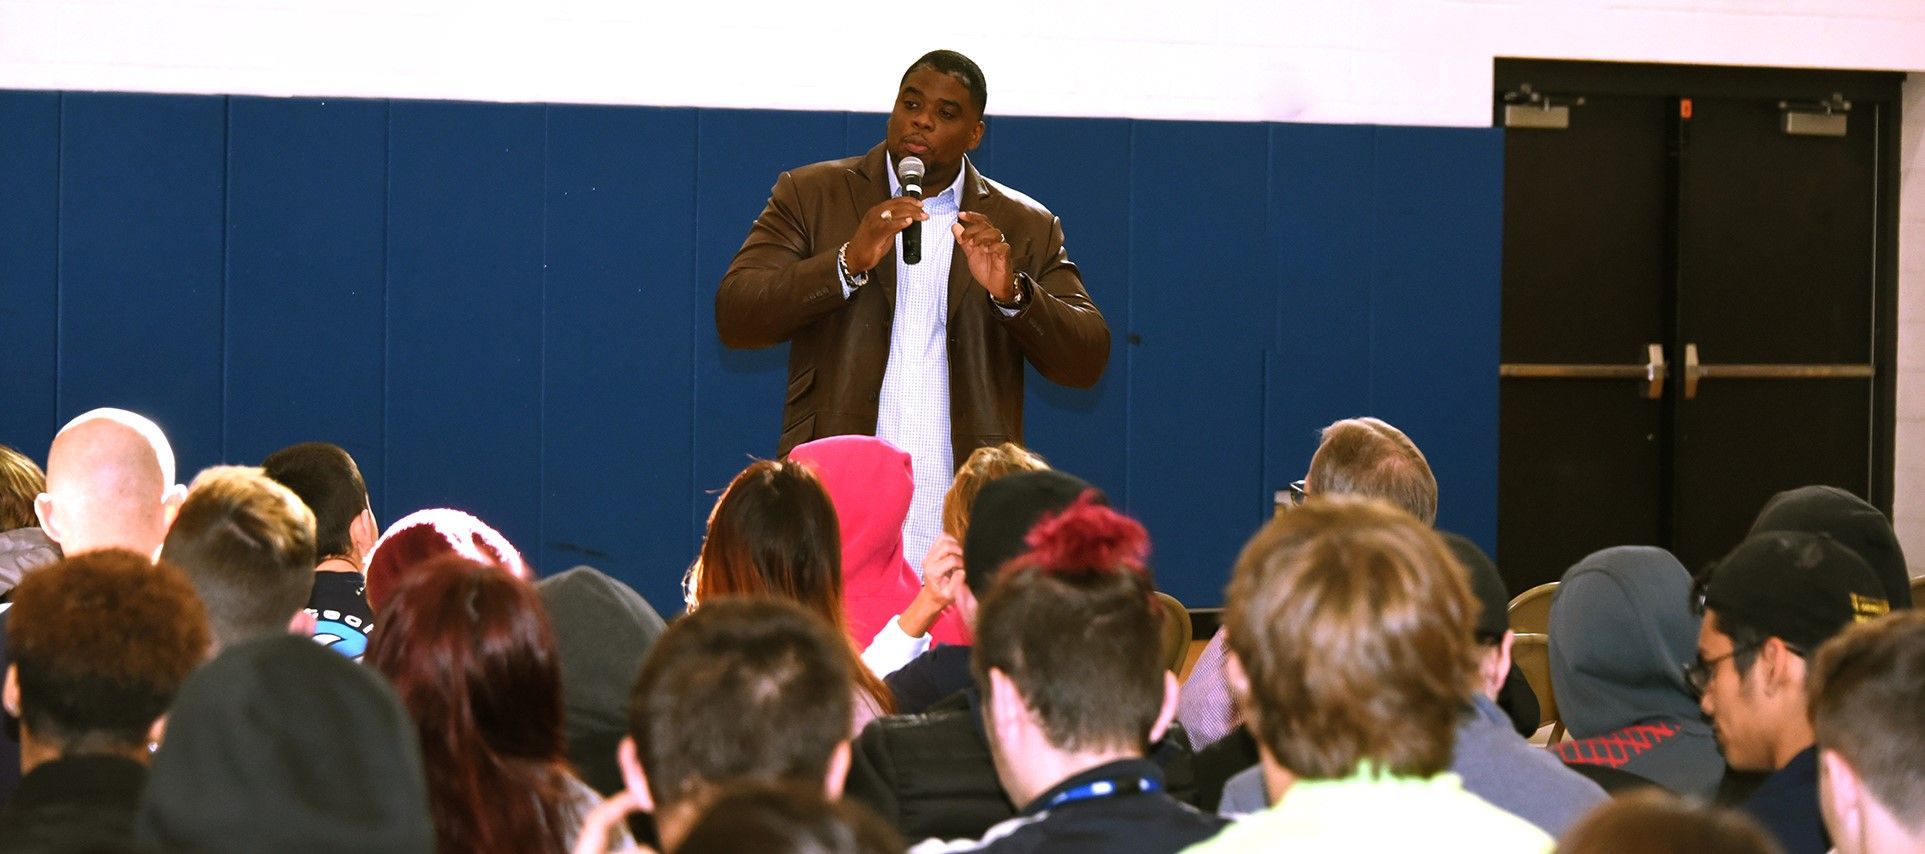 Acclaimed author, speaker brings inspirational message to BOCES